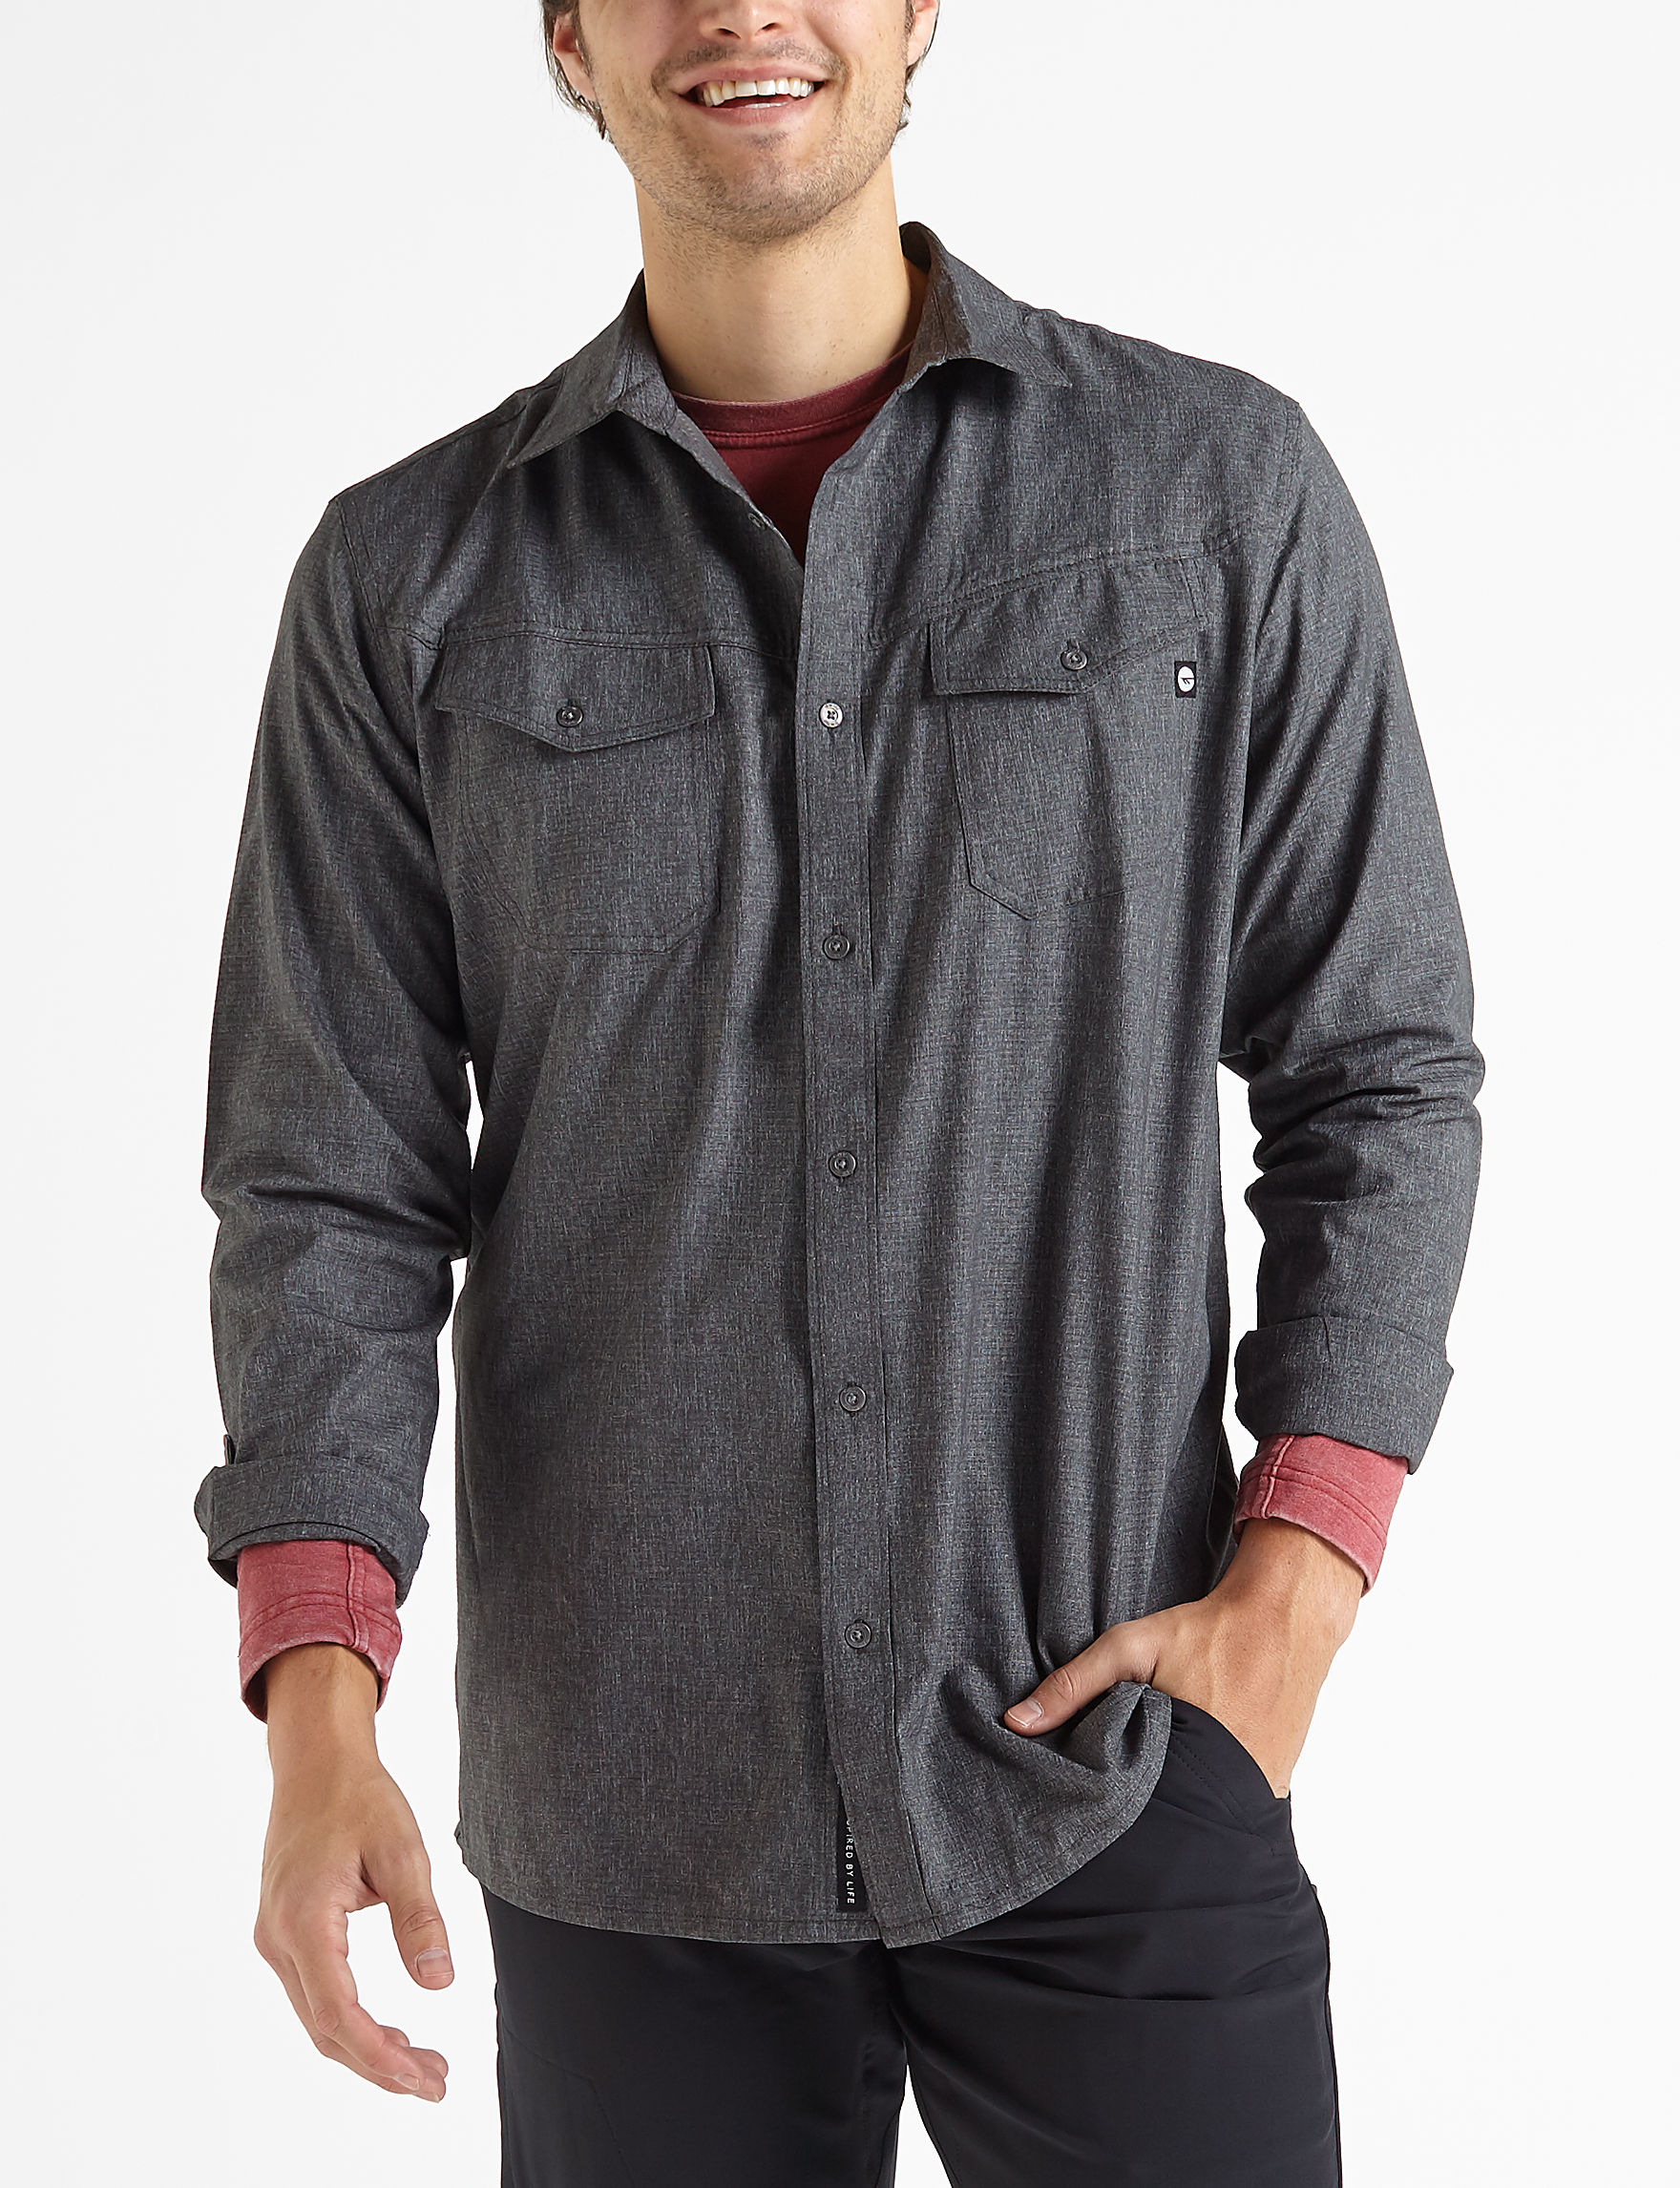 Hi-Tec Charcoal Casual Button Down Shirts